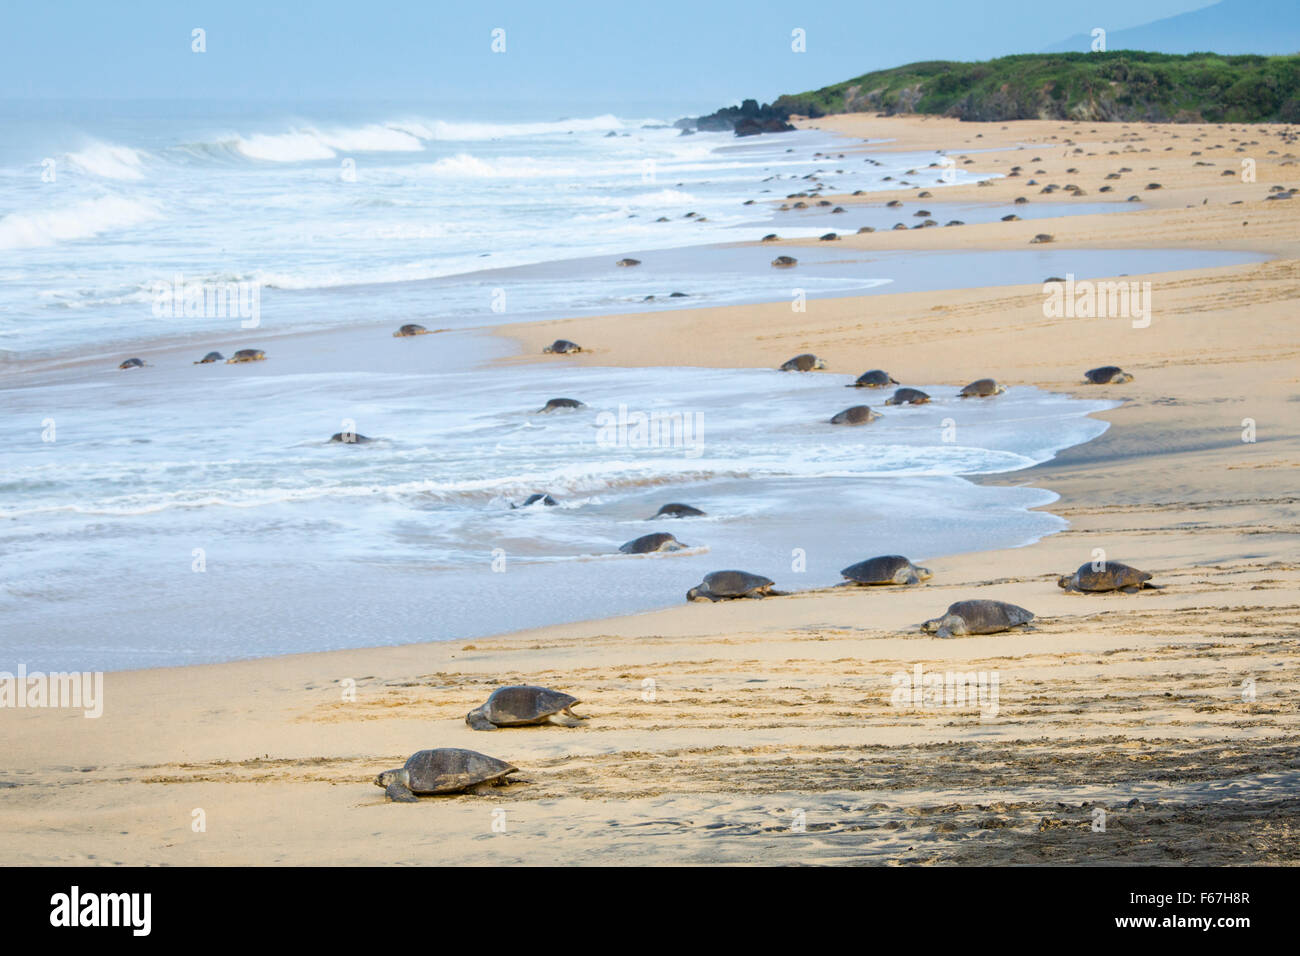 The tiny beach of Ixtapilla, Michoacan, Mexico fills with hundreds of nesting Olive Ridley sea turtles as dawn breaks. Stock Photo